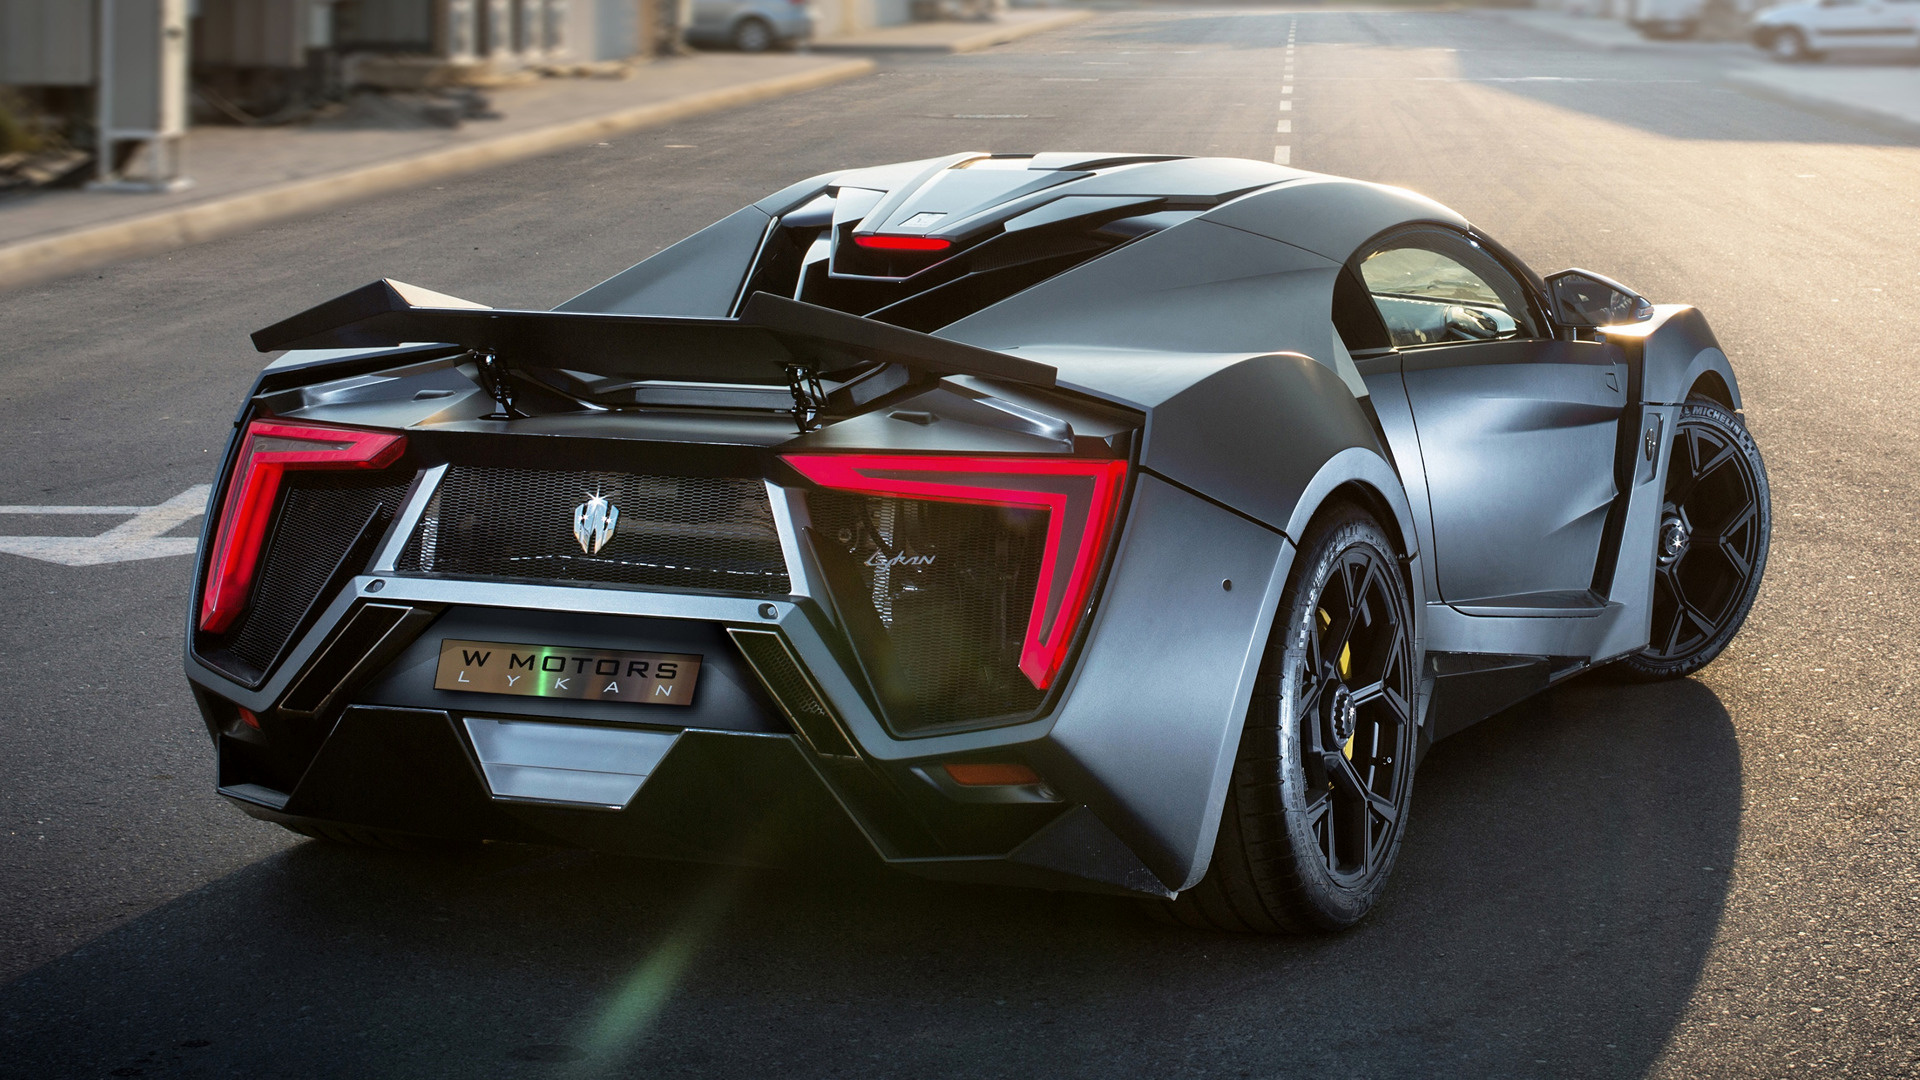 Lykan Hypersport Wallpaper Hd on 97 Dodge Ram Sport